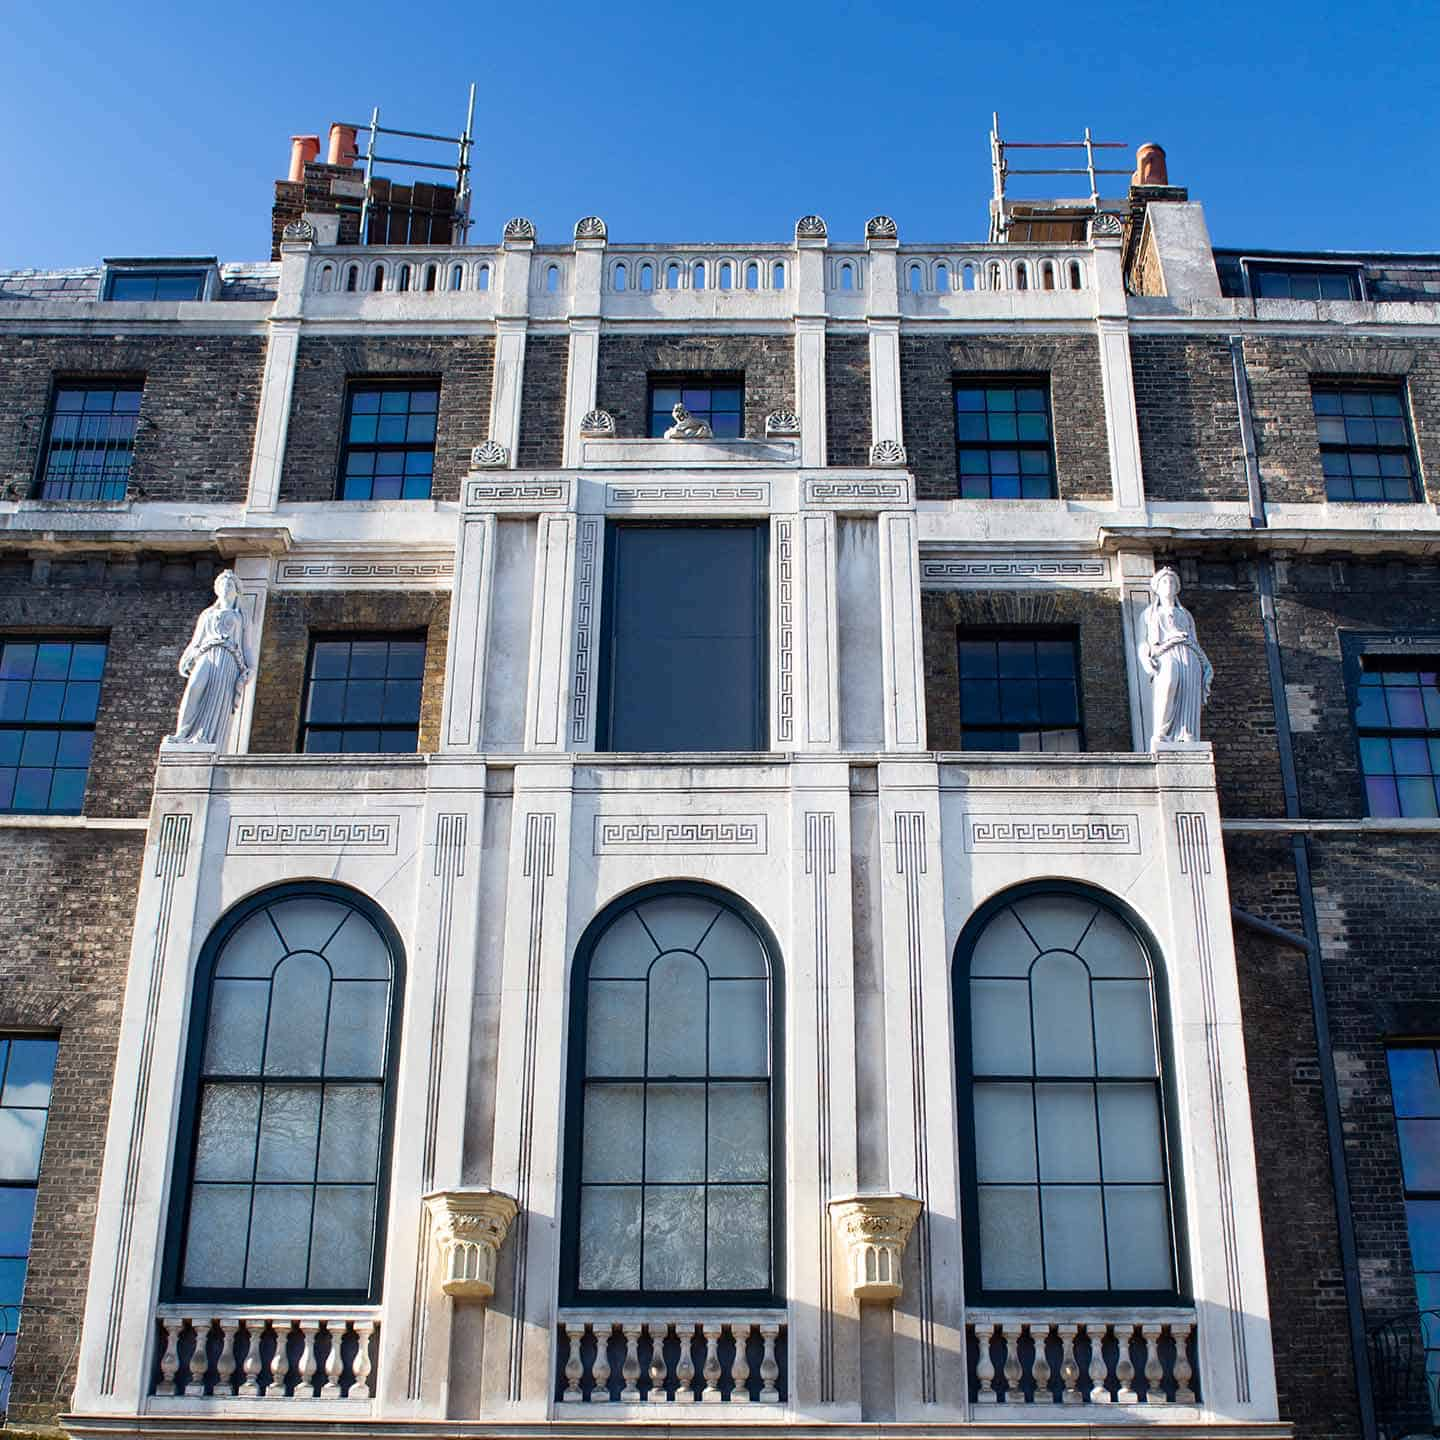 Image of the exterior of Sir John Soane's Museum in London